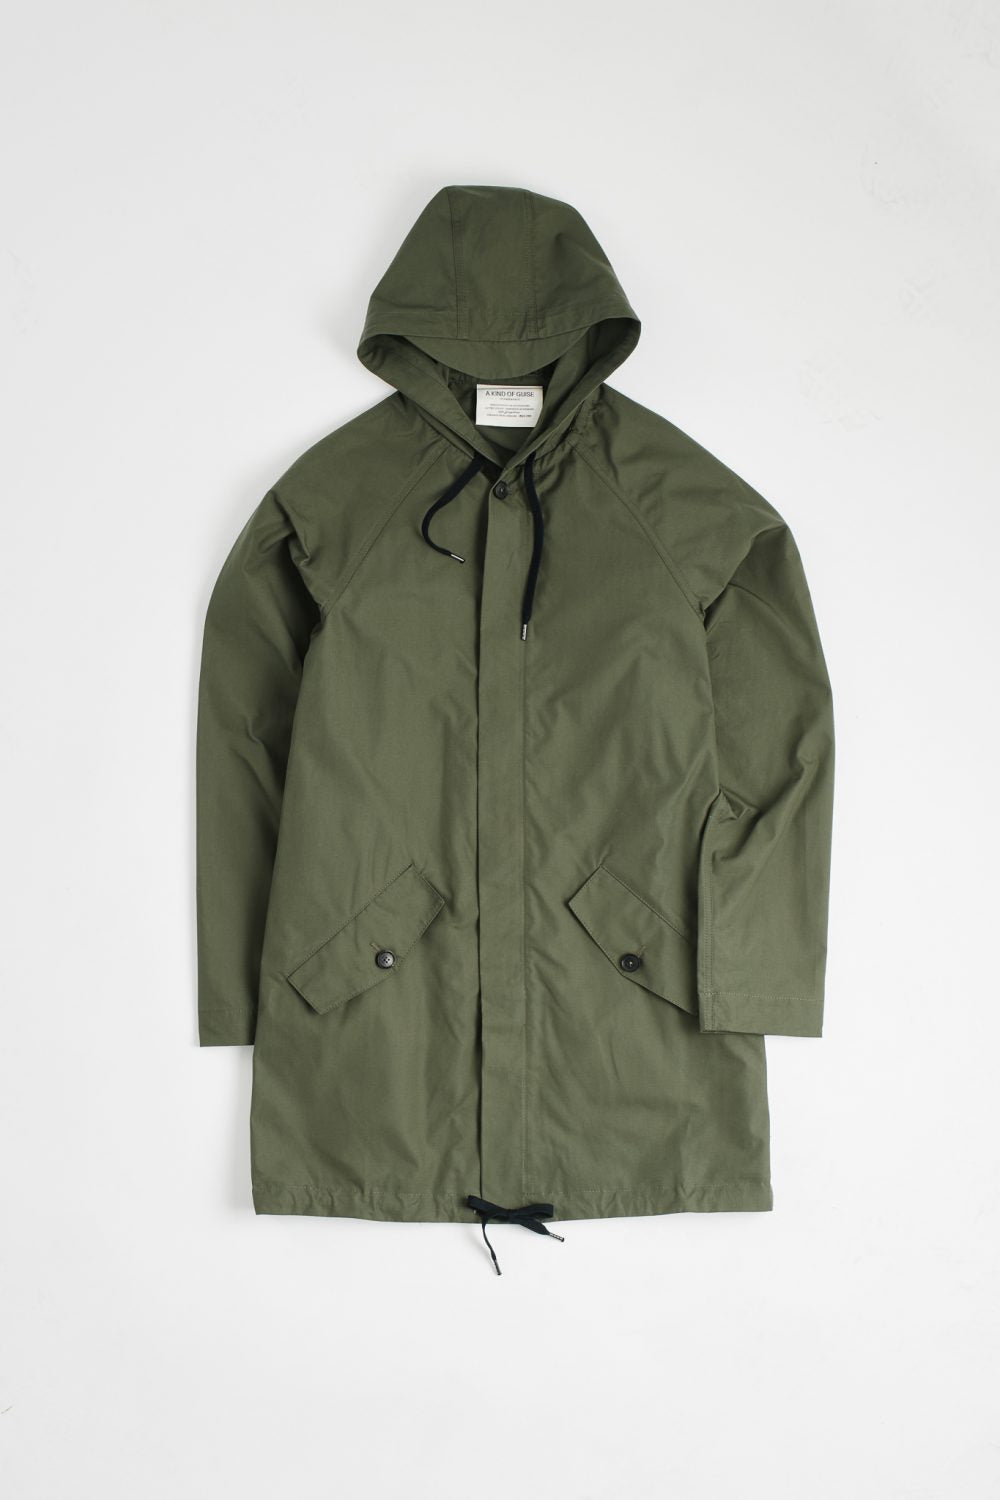 A-Kind-Of-Guise-Pernaments-Parka-Olive